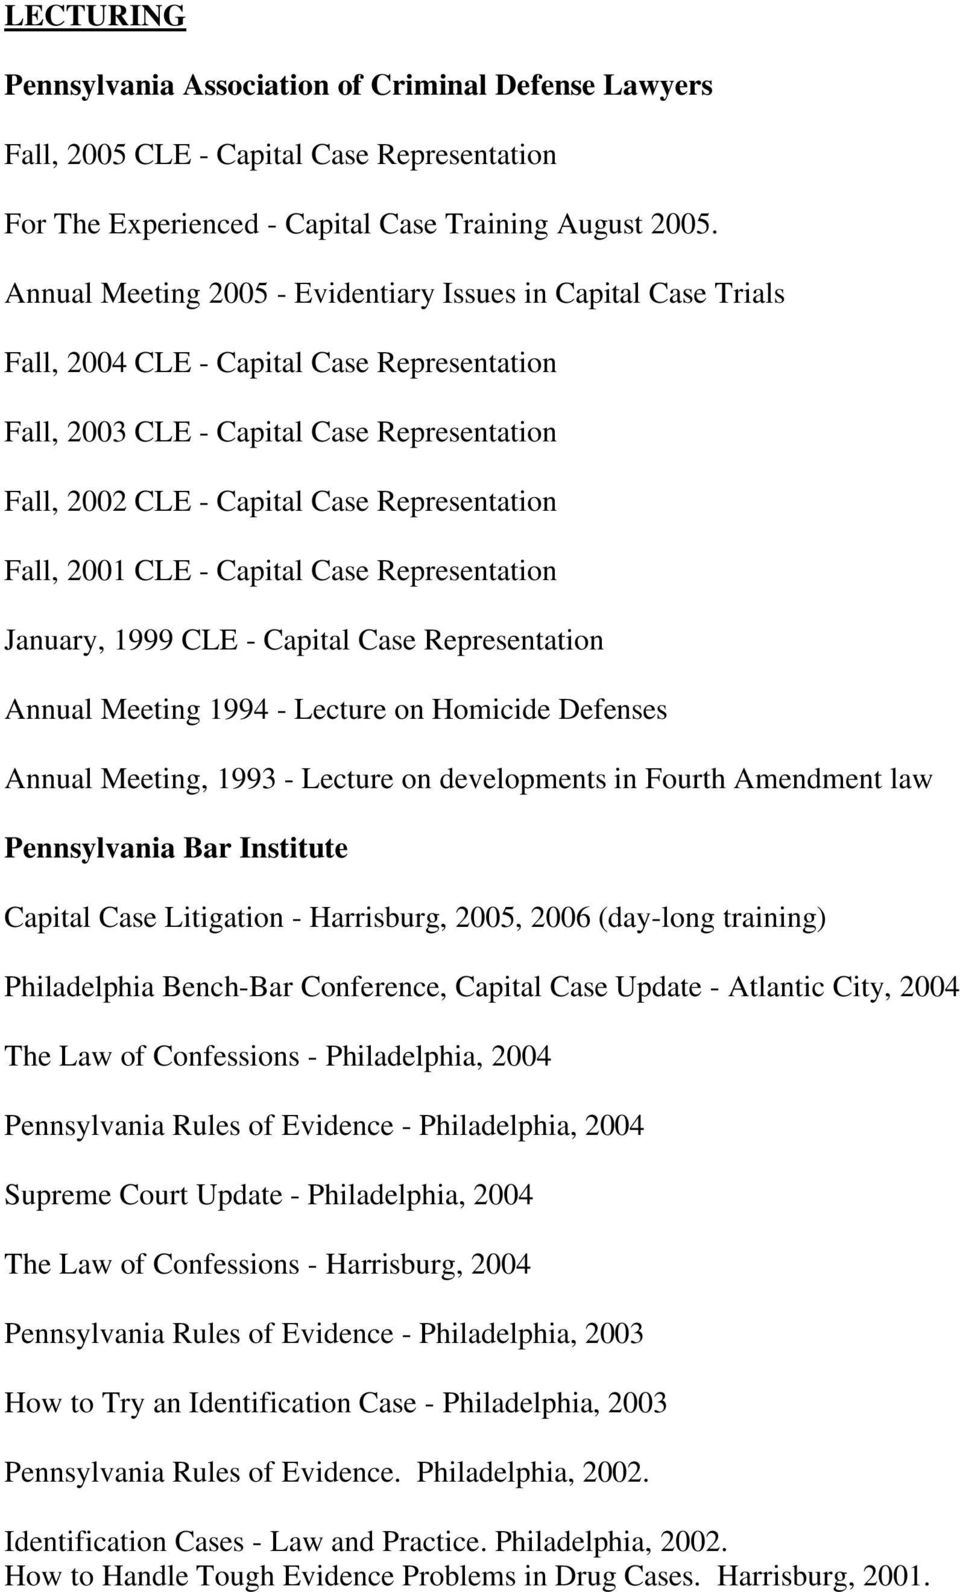 Fall, 2001 CLE - Capital Case Representation January, 1999 CLE - Capital Case Representation Annual Meeting 1994 - Lecture on Homicide Defenses Annual Meeting, 1993 - Lecture on developments in